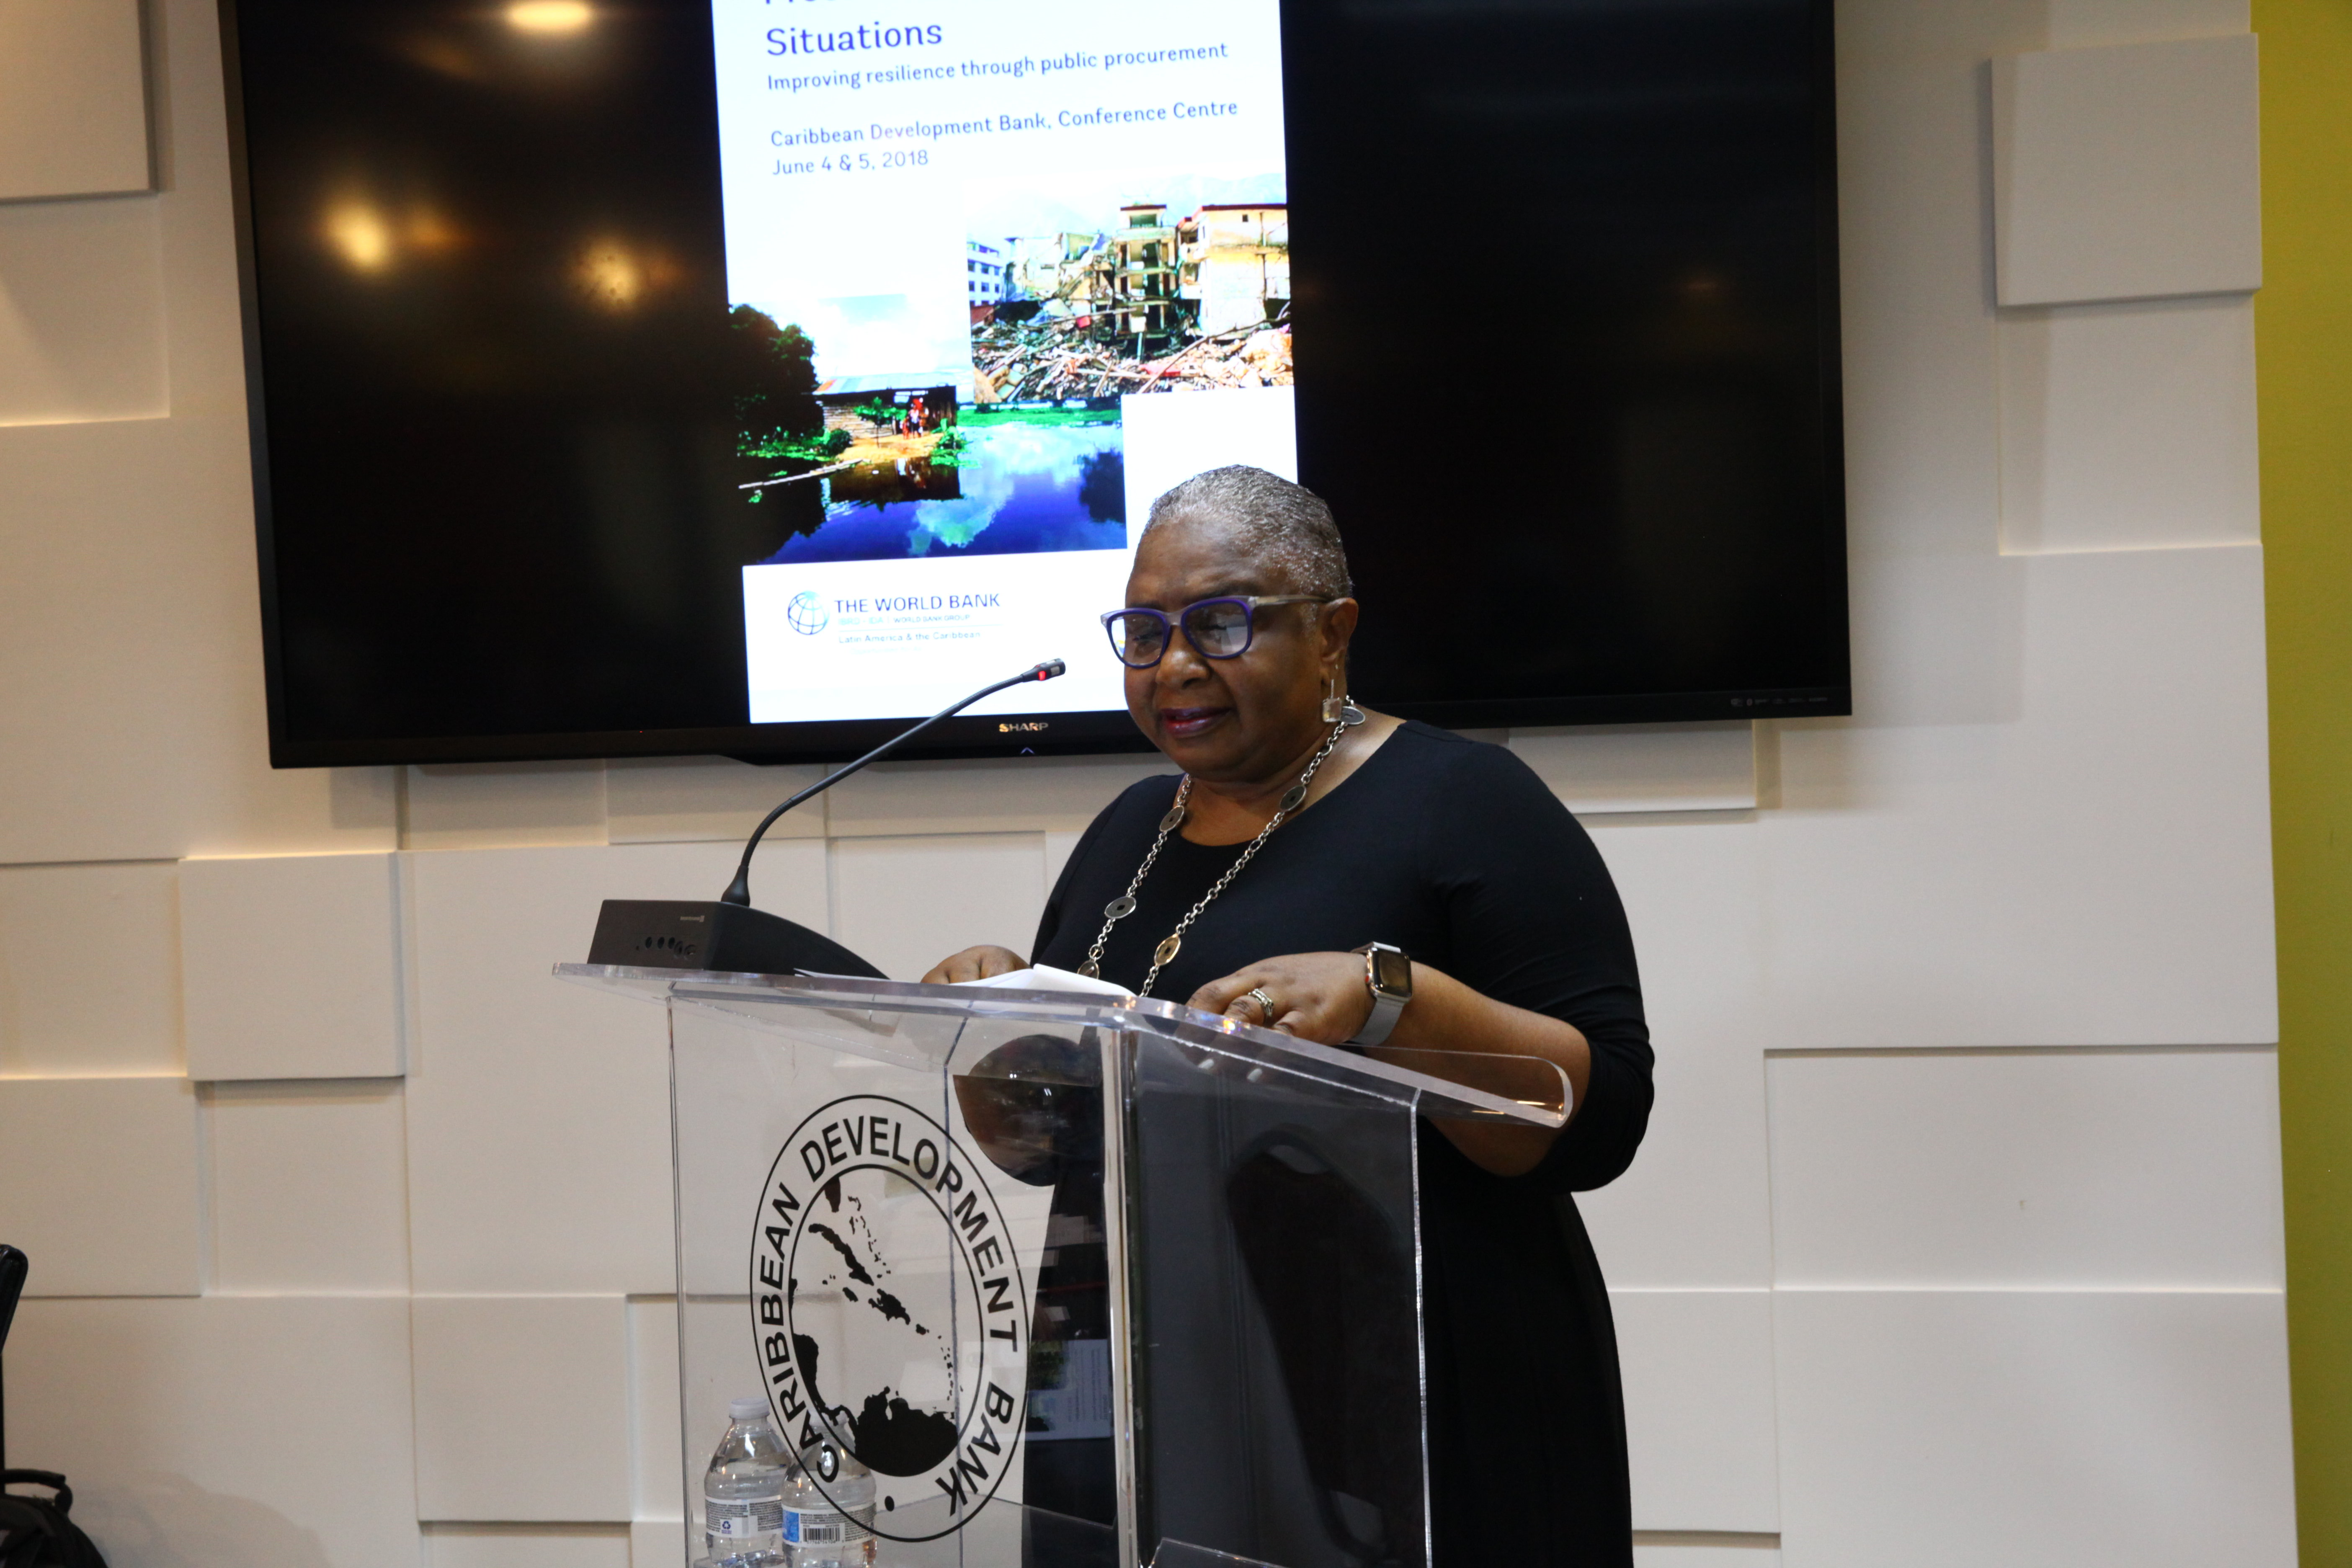 Cheryl Dixon, Coordinator, Environmental Sustainability Unit, CDB, stresses the importance of understanding procurement in emergency situations during her opening remarks.